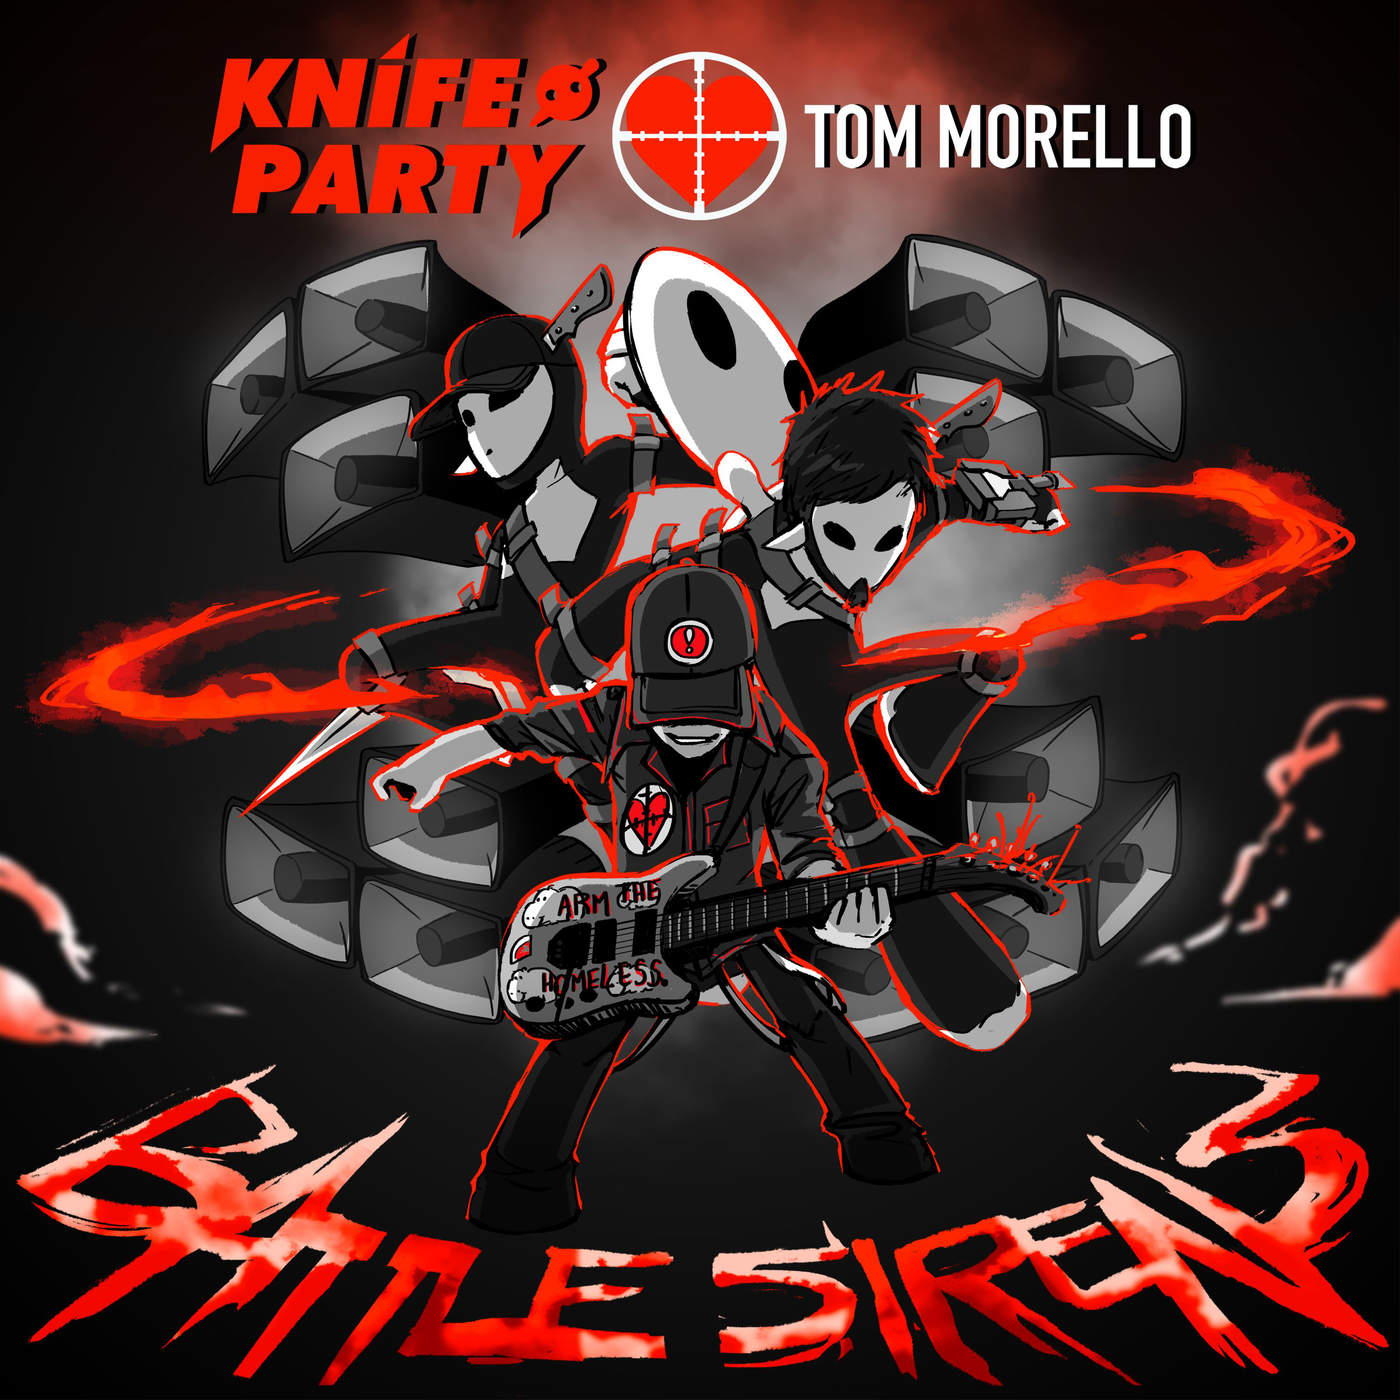 Knife Party & Tom Morello - Battle Sirens - Single Cover